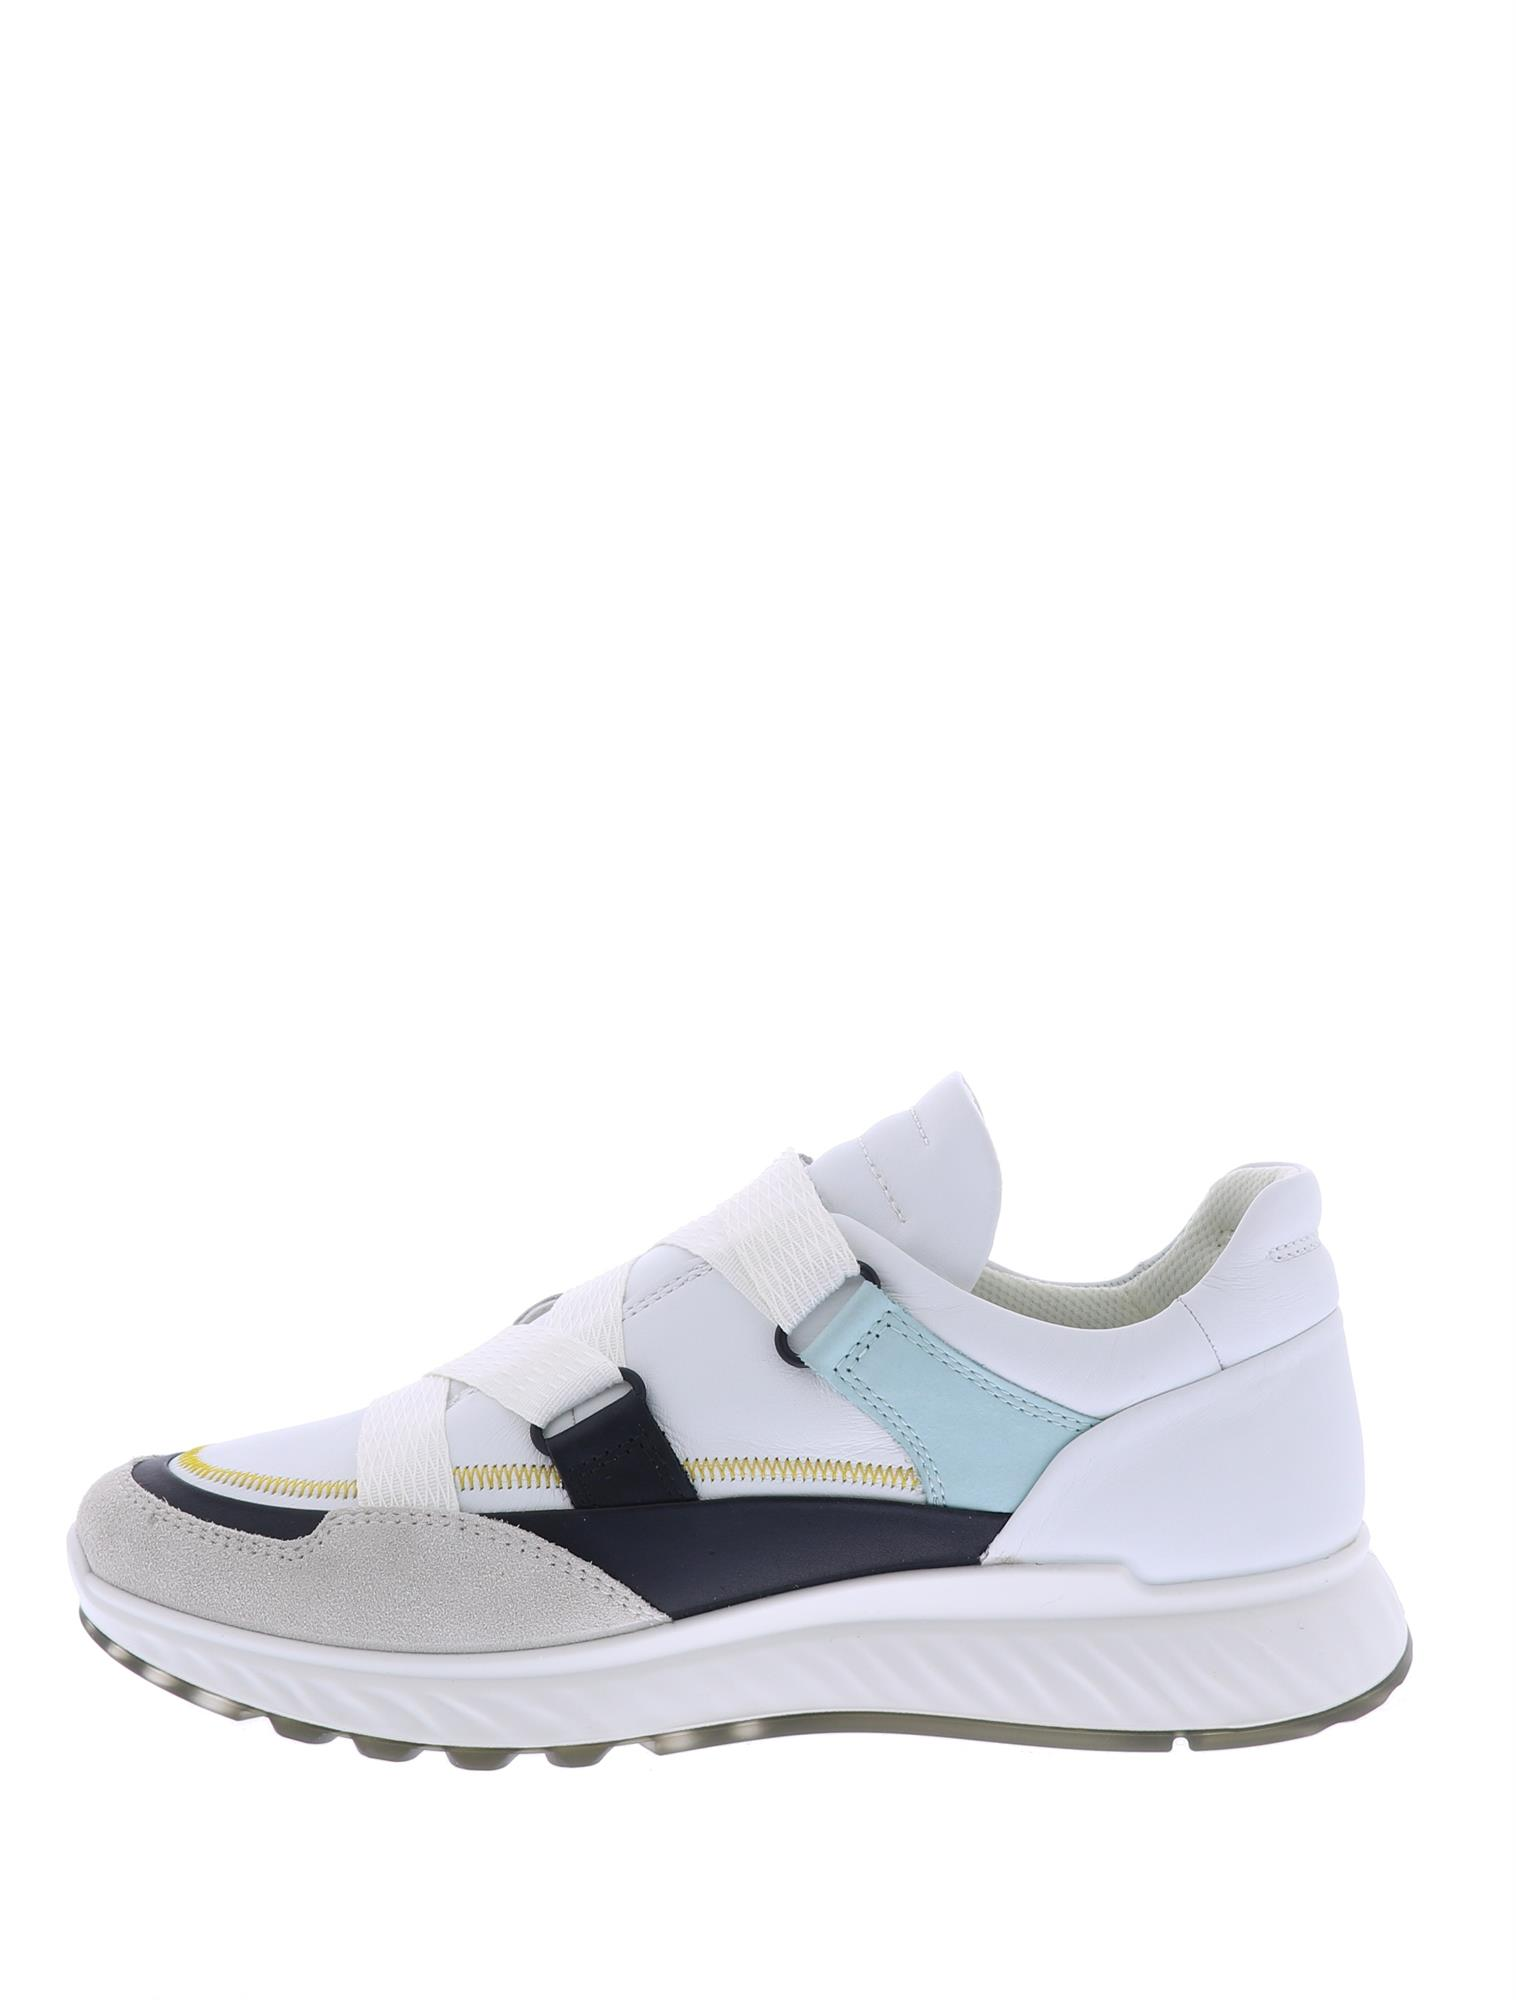 Ecco St. 1 W Shadow White Lage Sneakers Sneakers Nolten